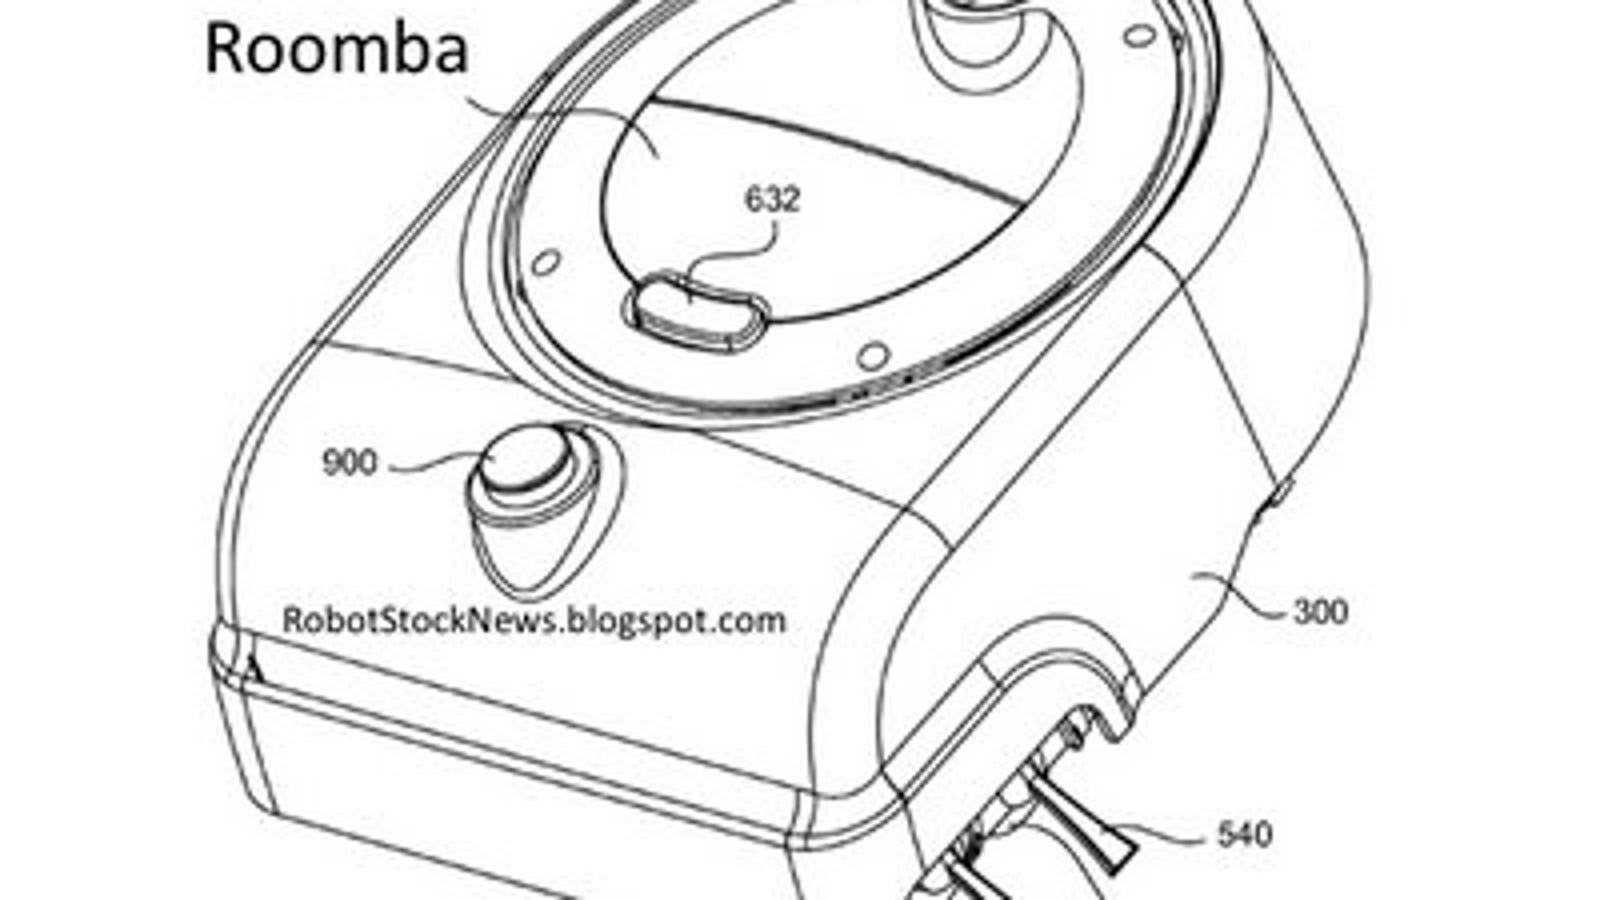 roomba patent solves pesky corner cleaning problem with simple geometry Vacuum Roomba 880